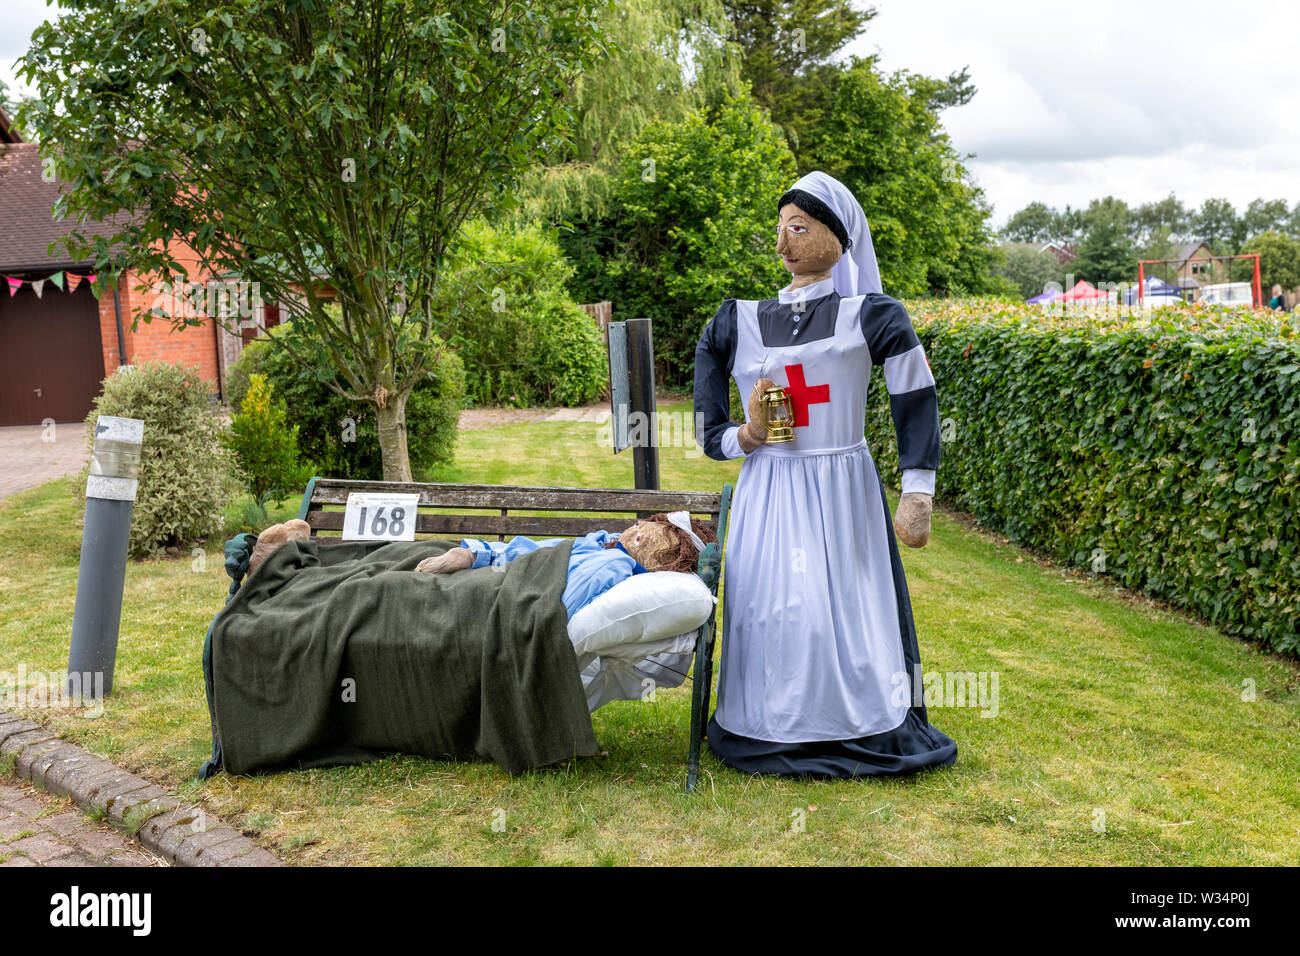 An exhibit at the Garstang Scarecrow Festival. A nurse scarecrow and her patient - Stock Image